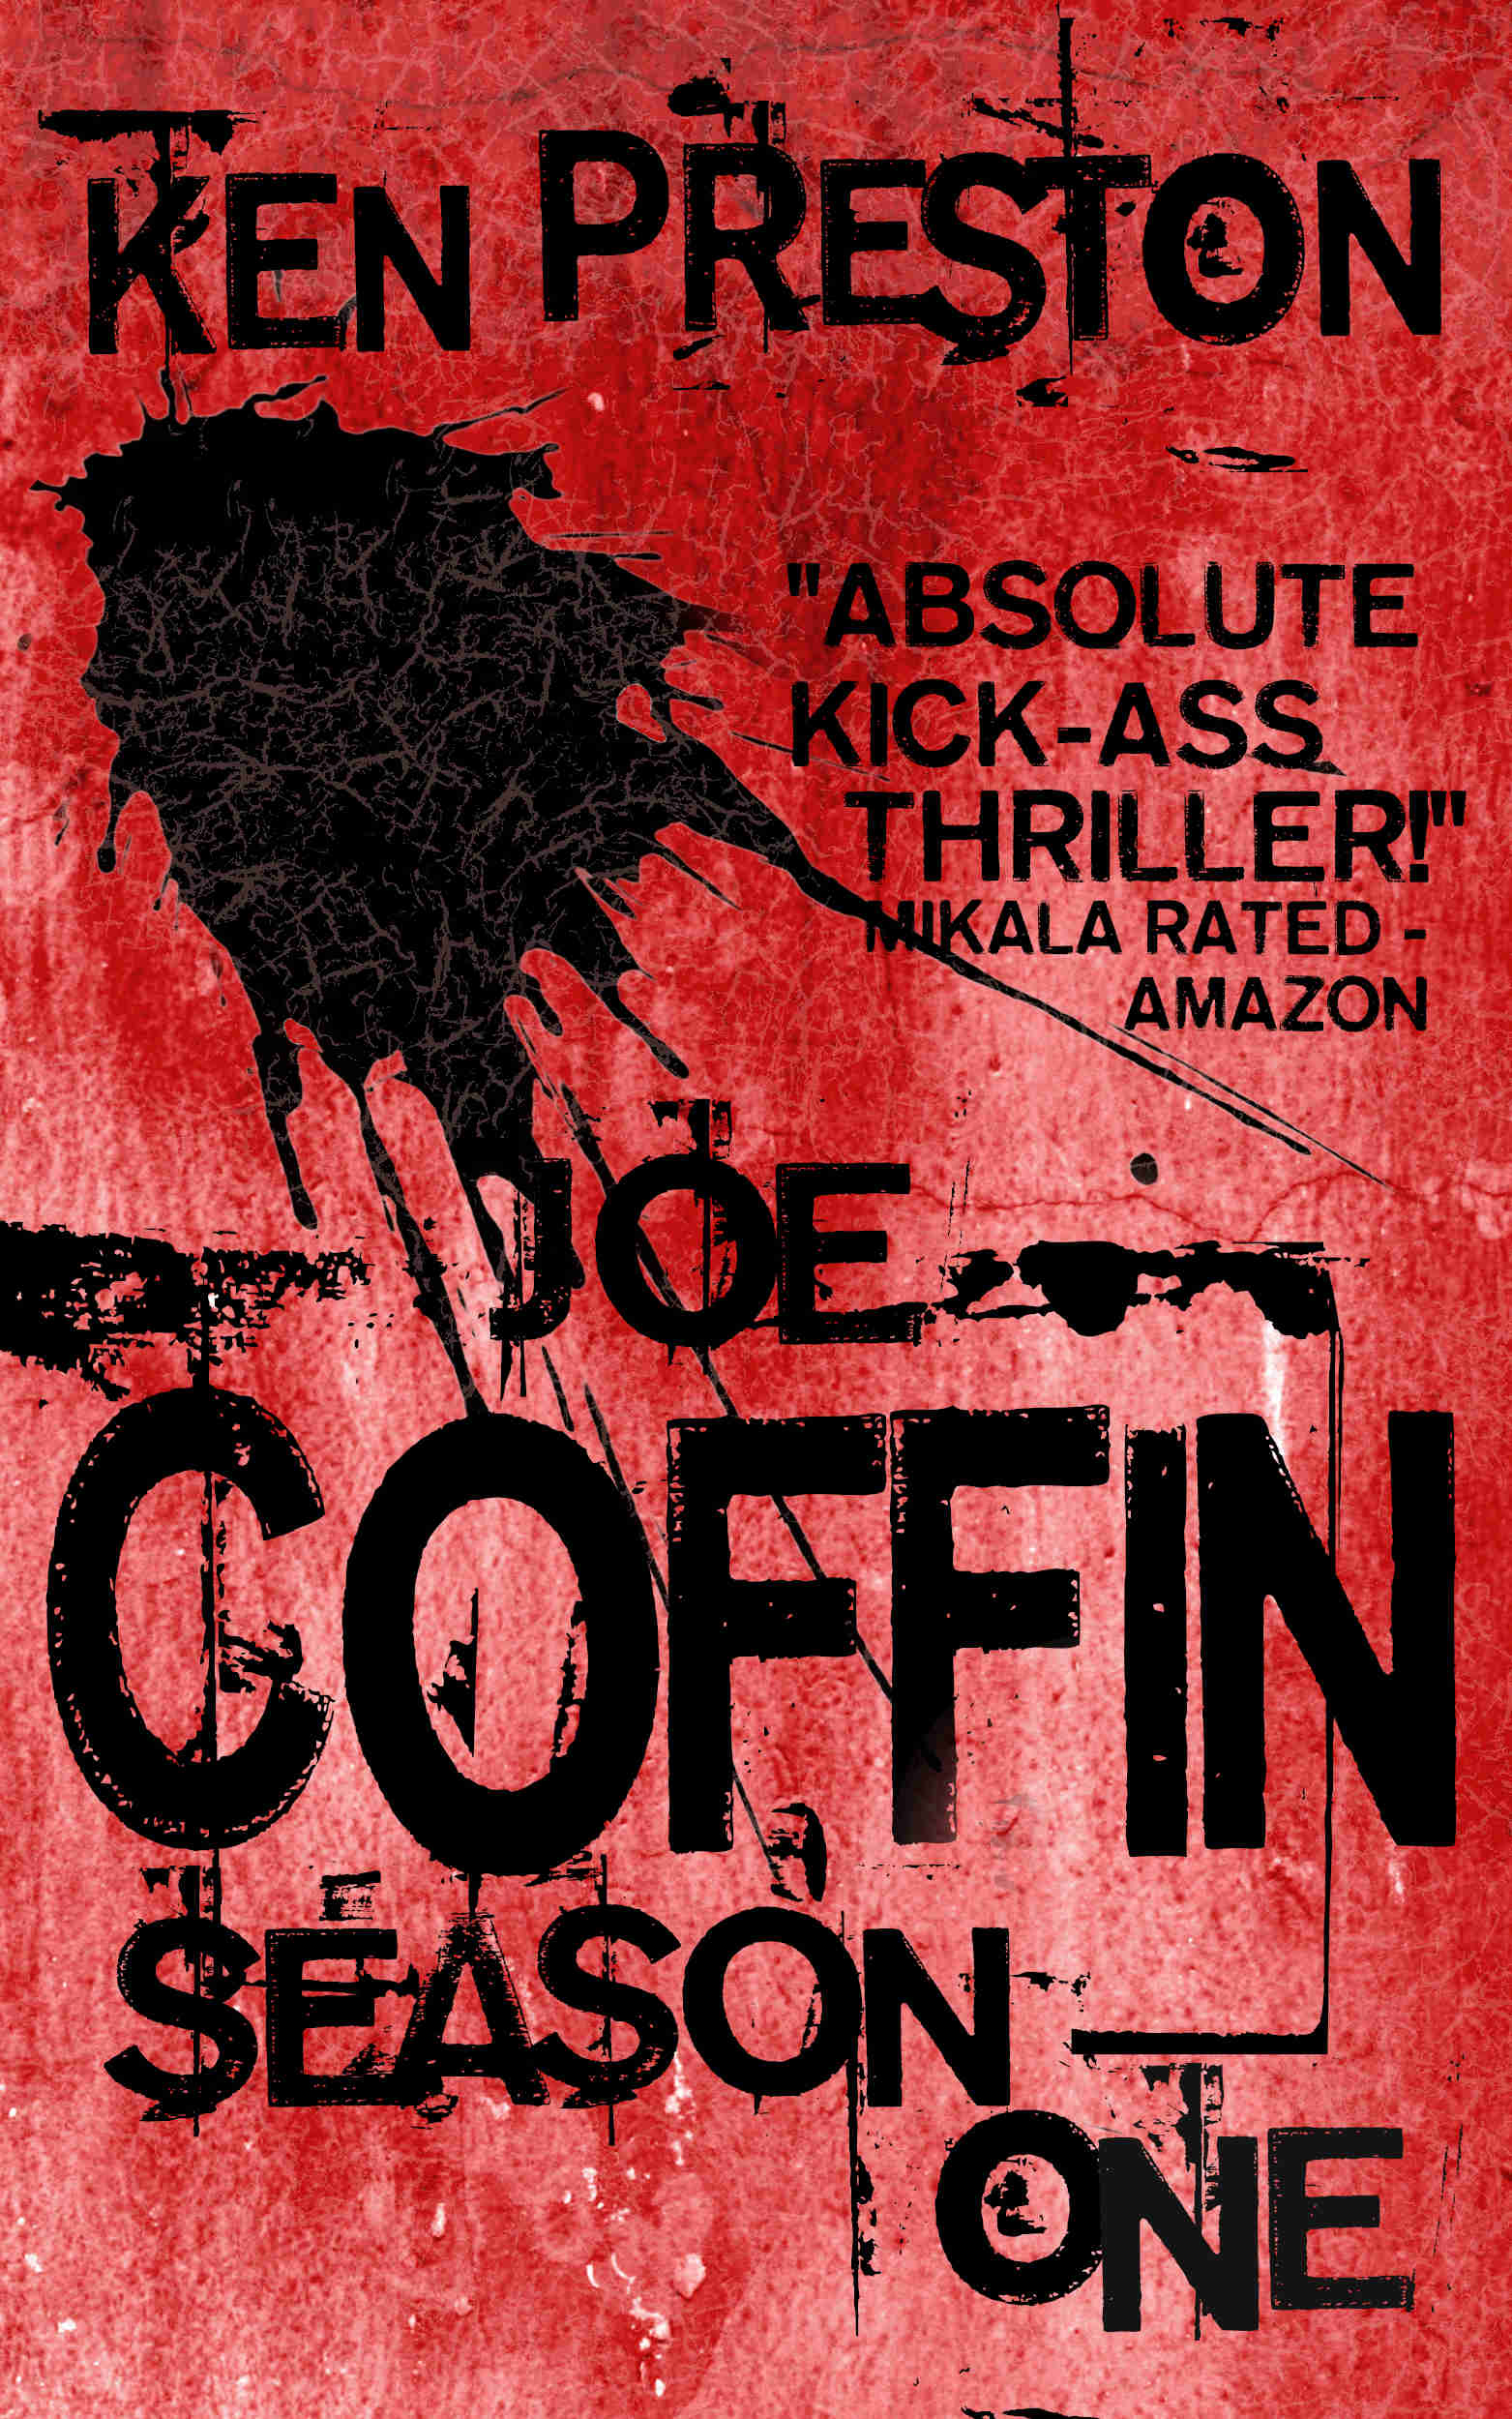 Joe Coffin Season One Book Cover